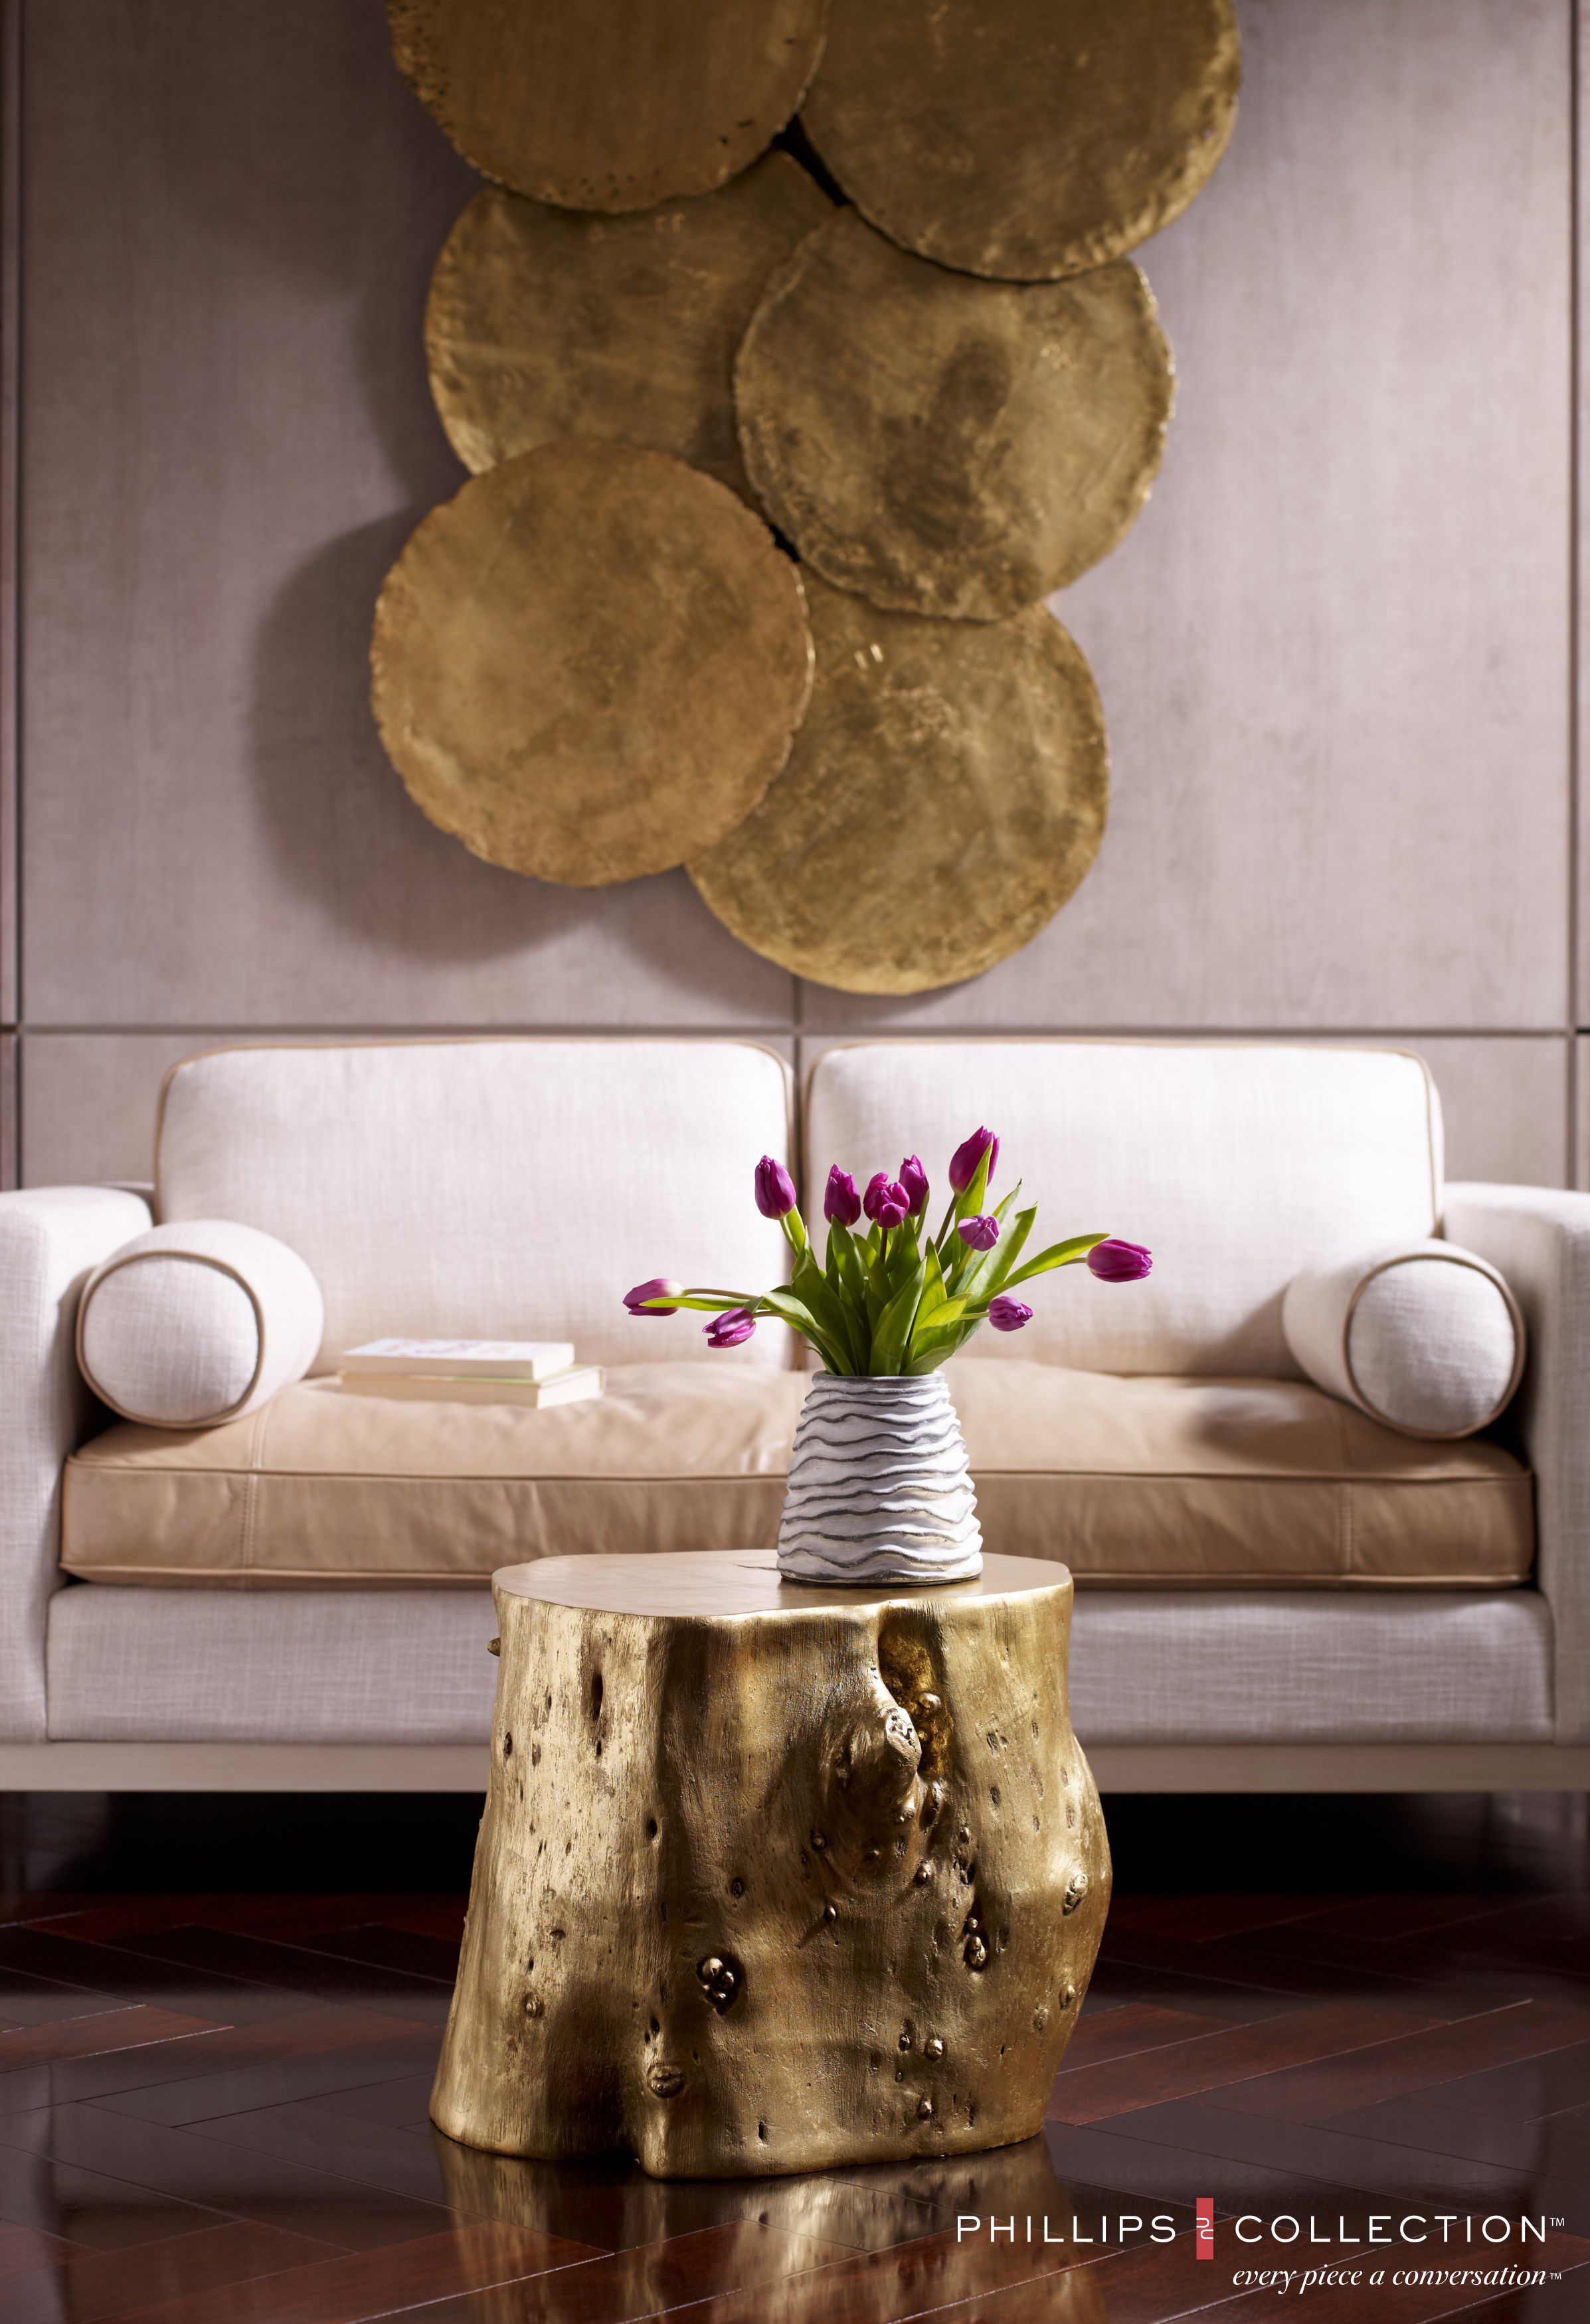 home decor furniture phillips collection. Phillips Collection Galvanized Wall Decor And Log Collection. Home Furniture S